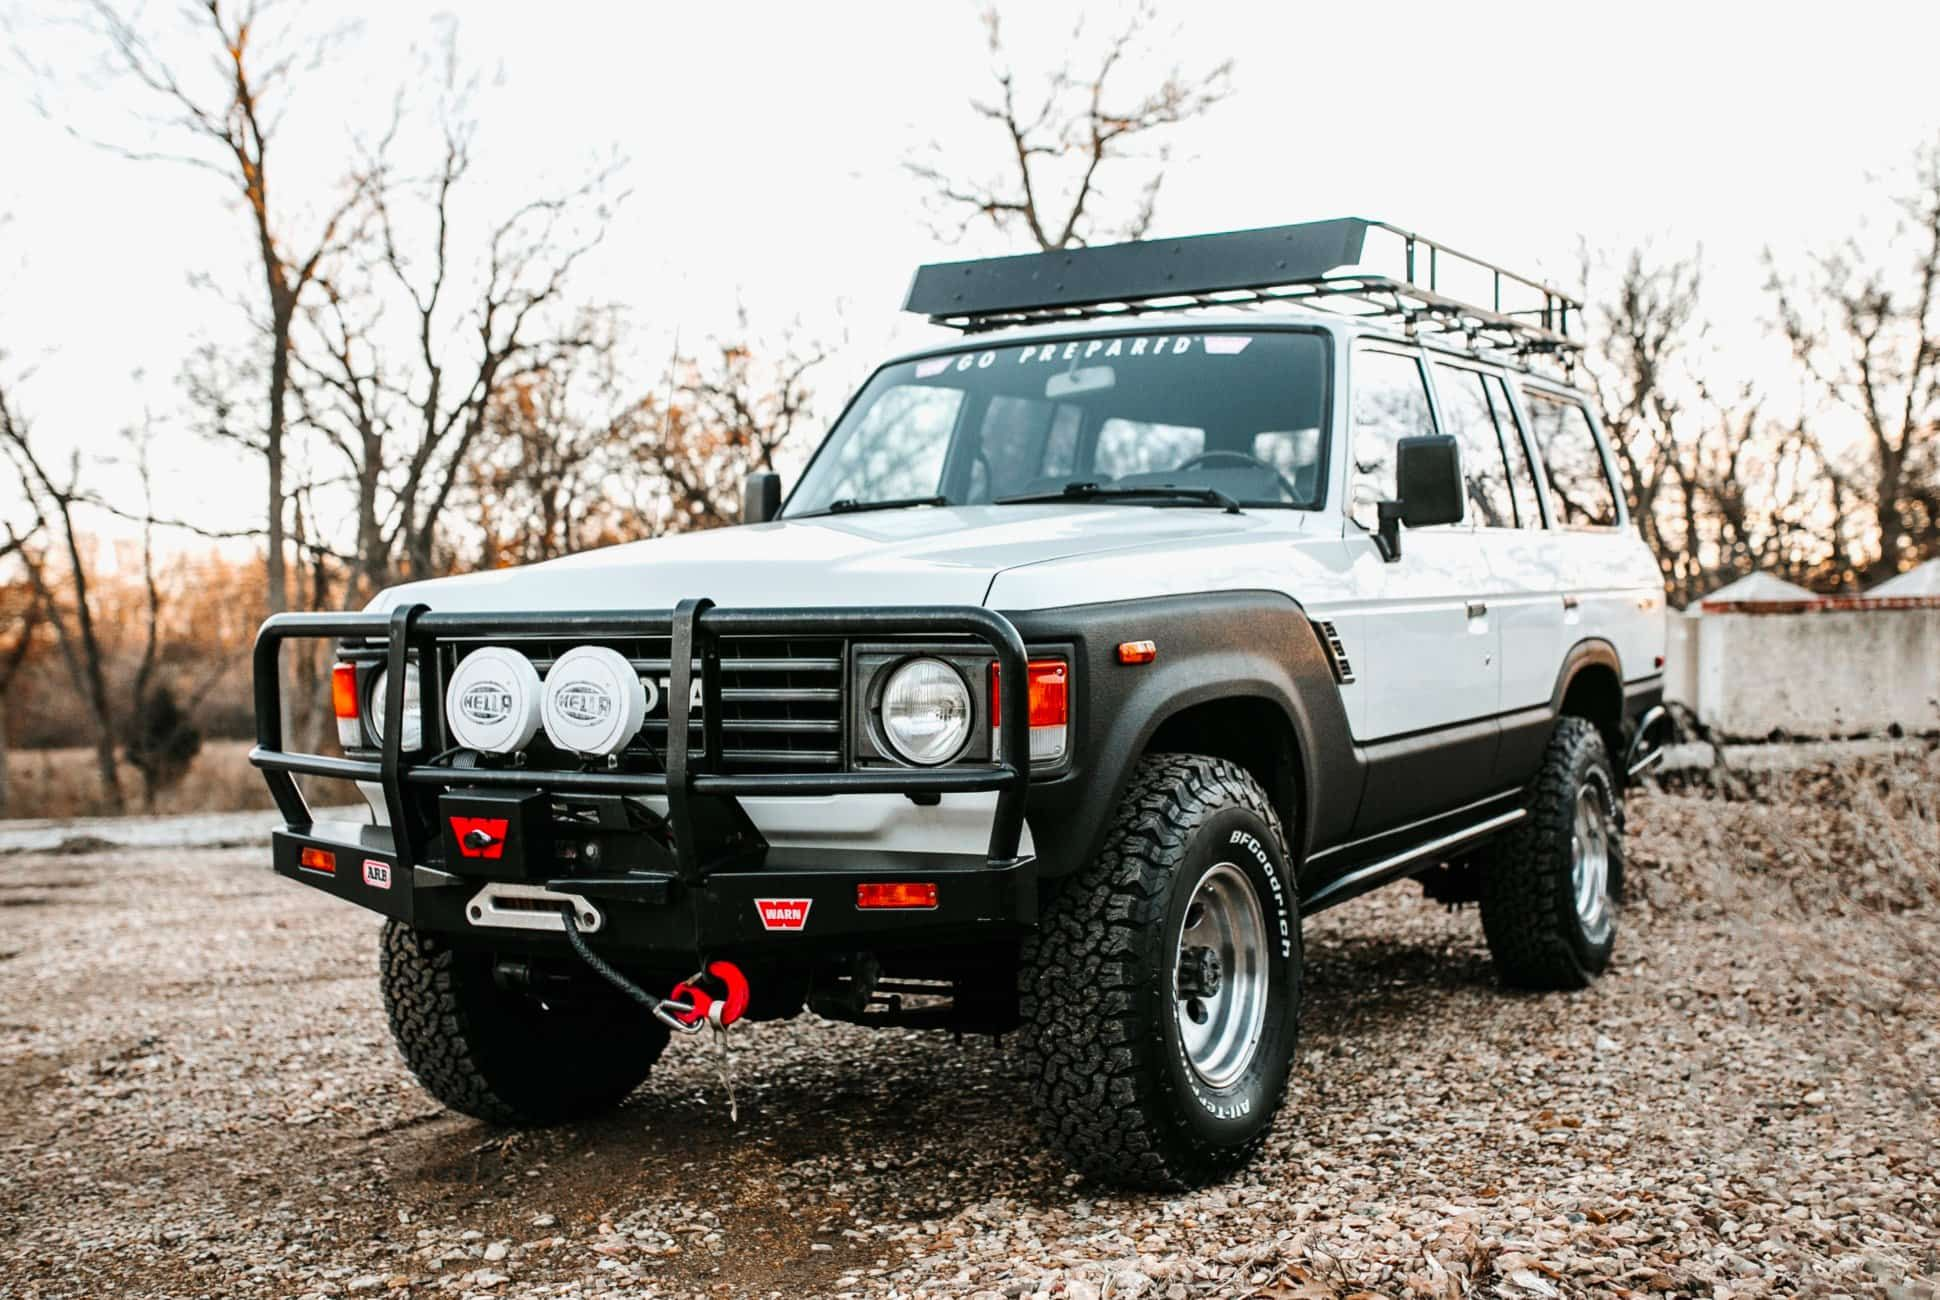 A Restored Vintage OffRoader That's Actually Affordable